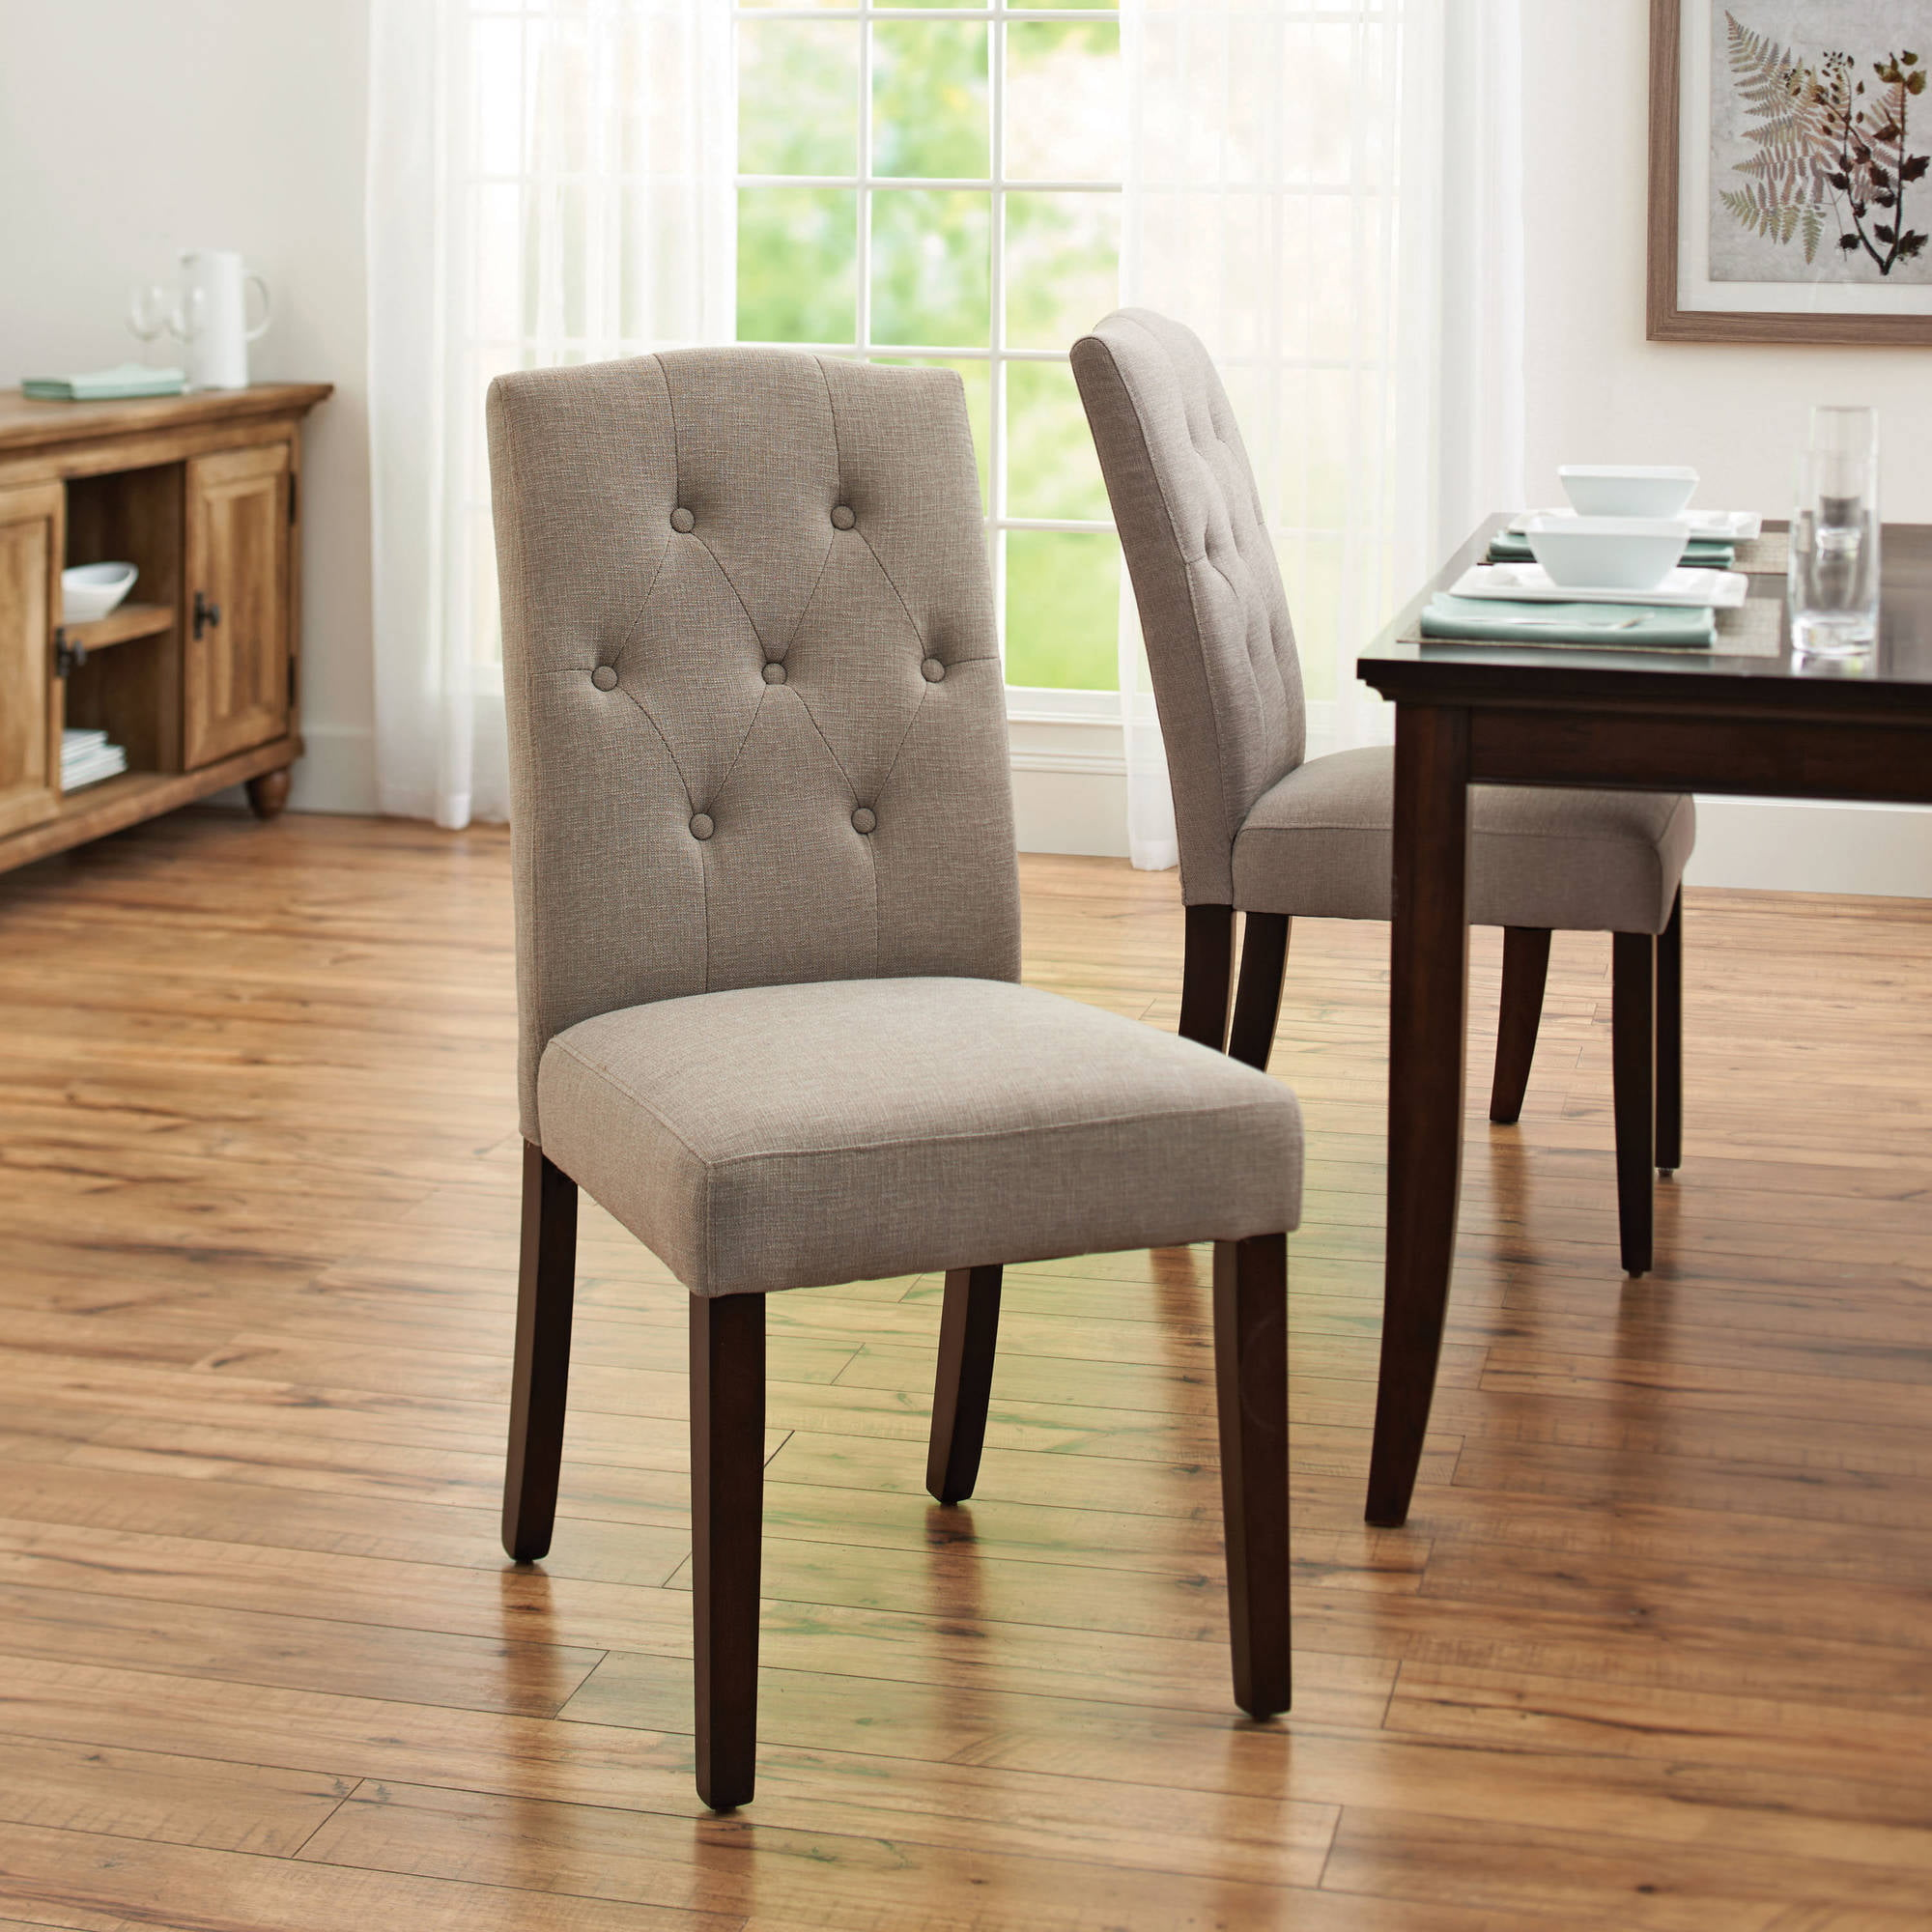 Better Homes and Gardens Parsons Tufted Dining Chair, Taupe by Dorel Asia